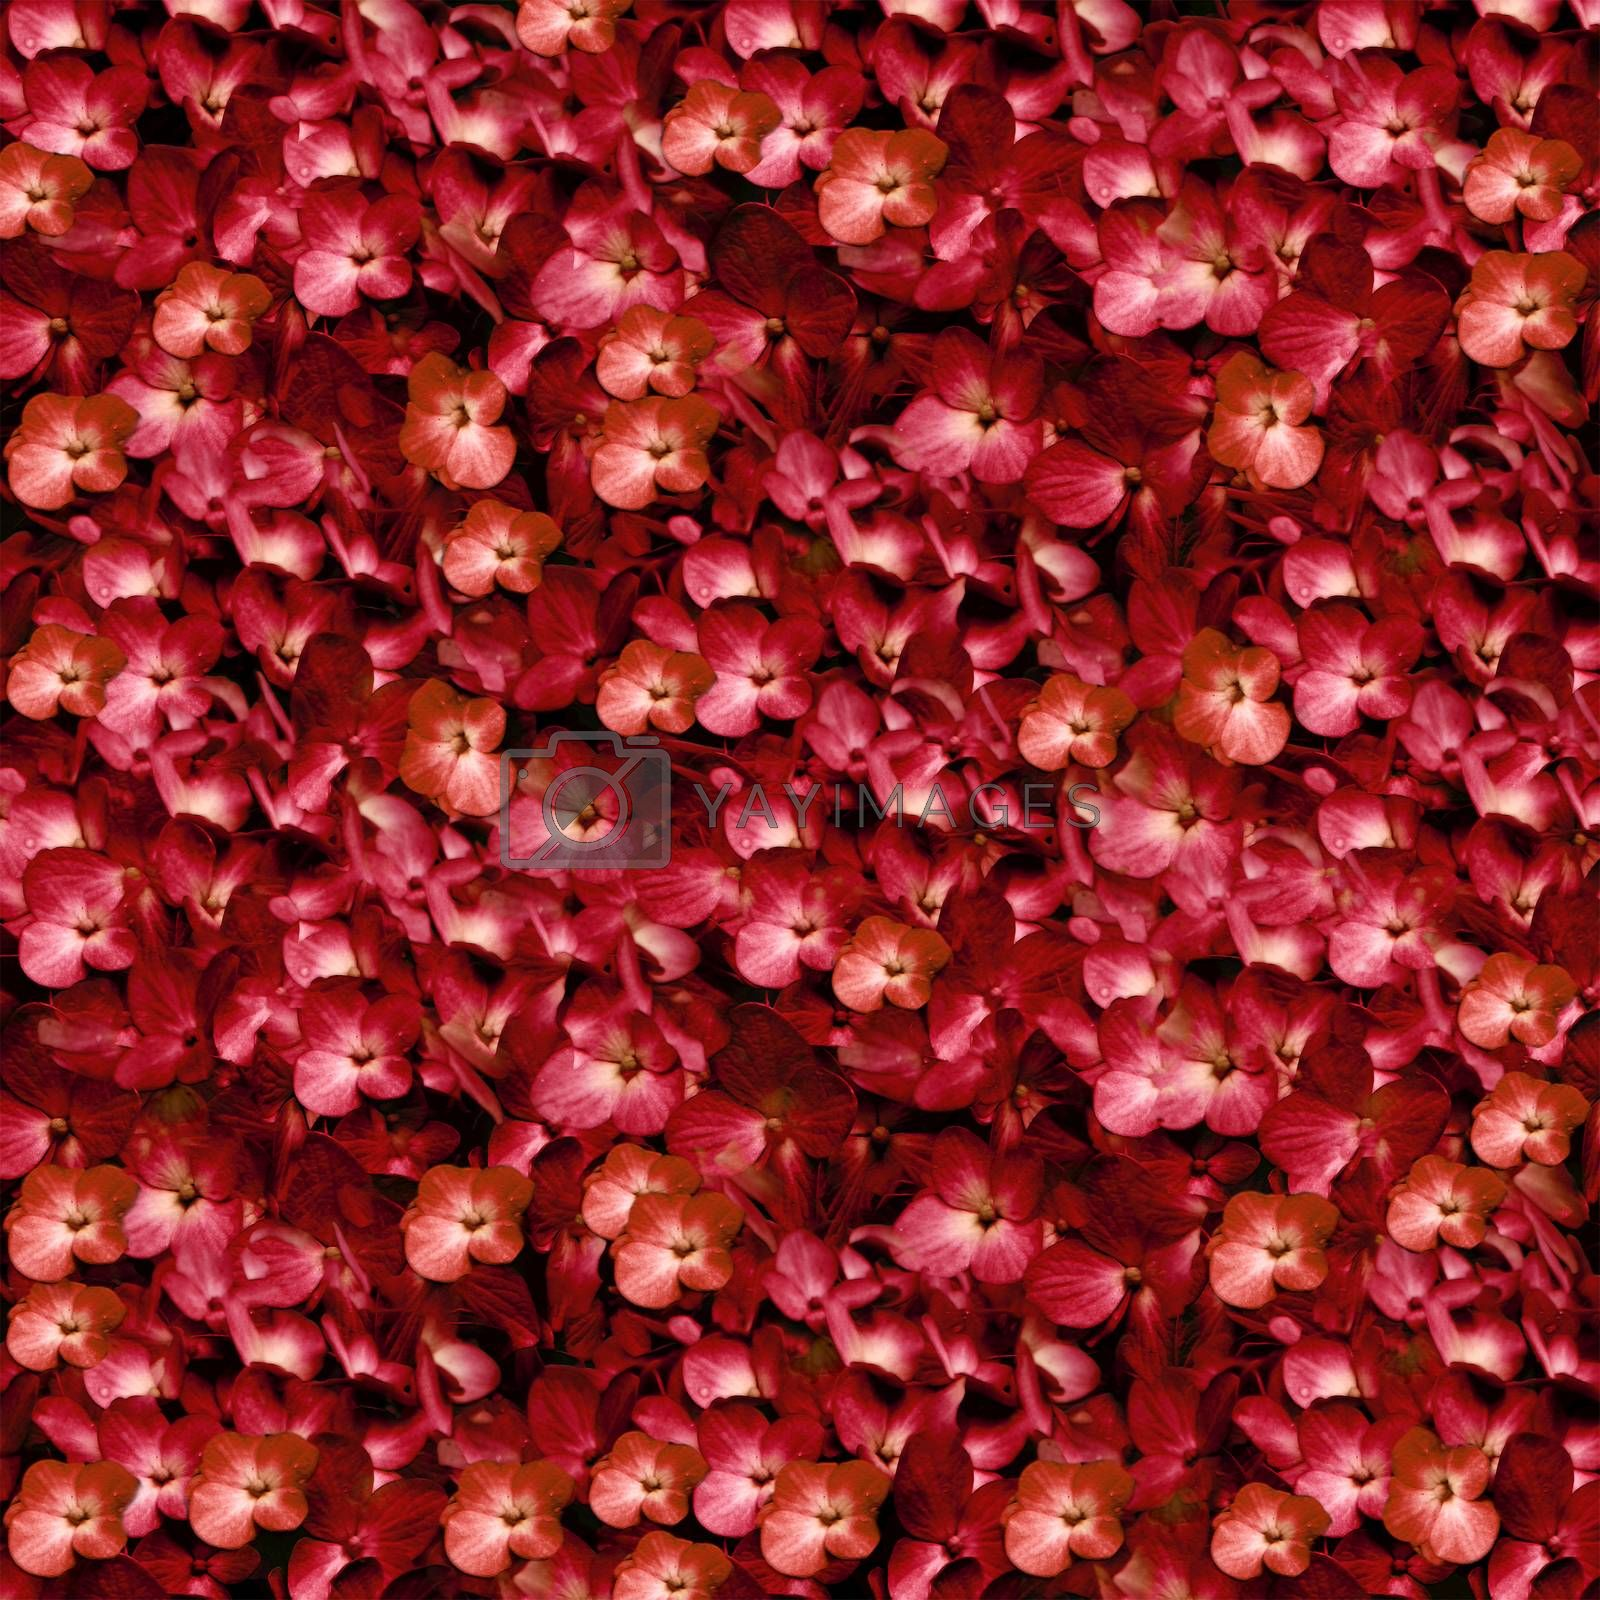 Elegant and fancy digital manipulation technique photo flowers motif pattern collage in saturated red and orange colors